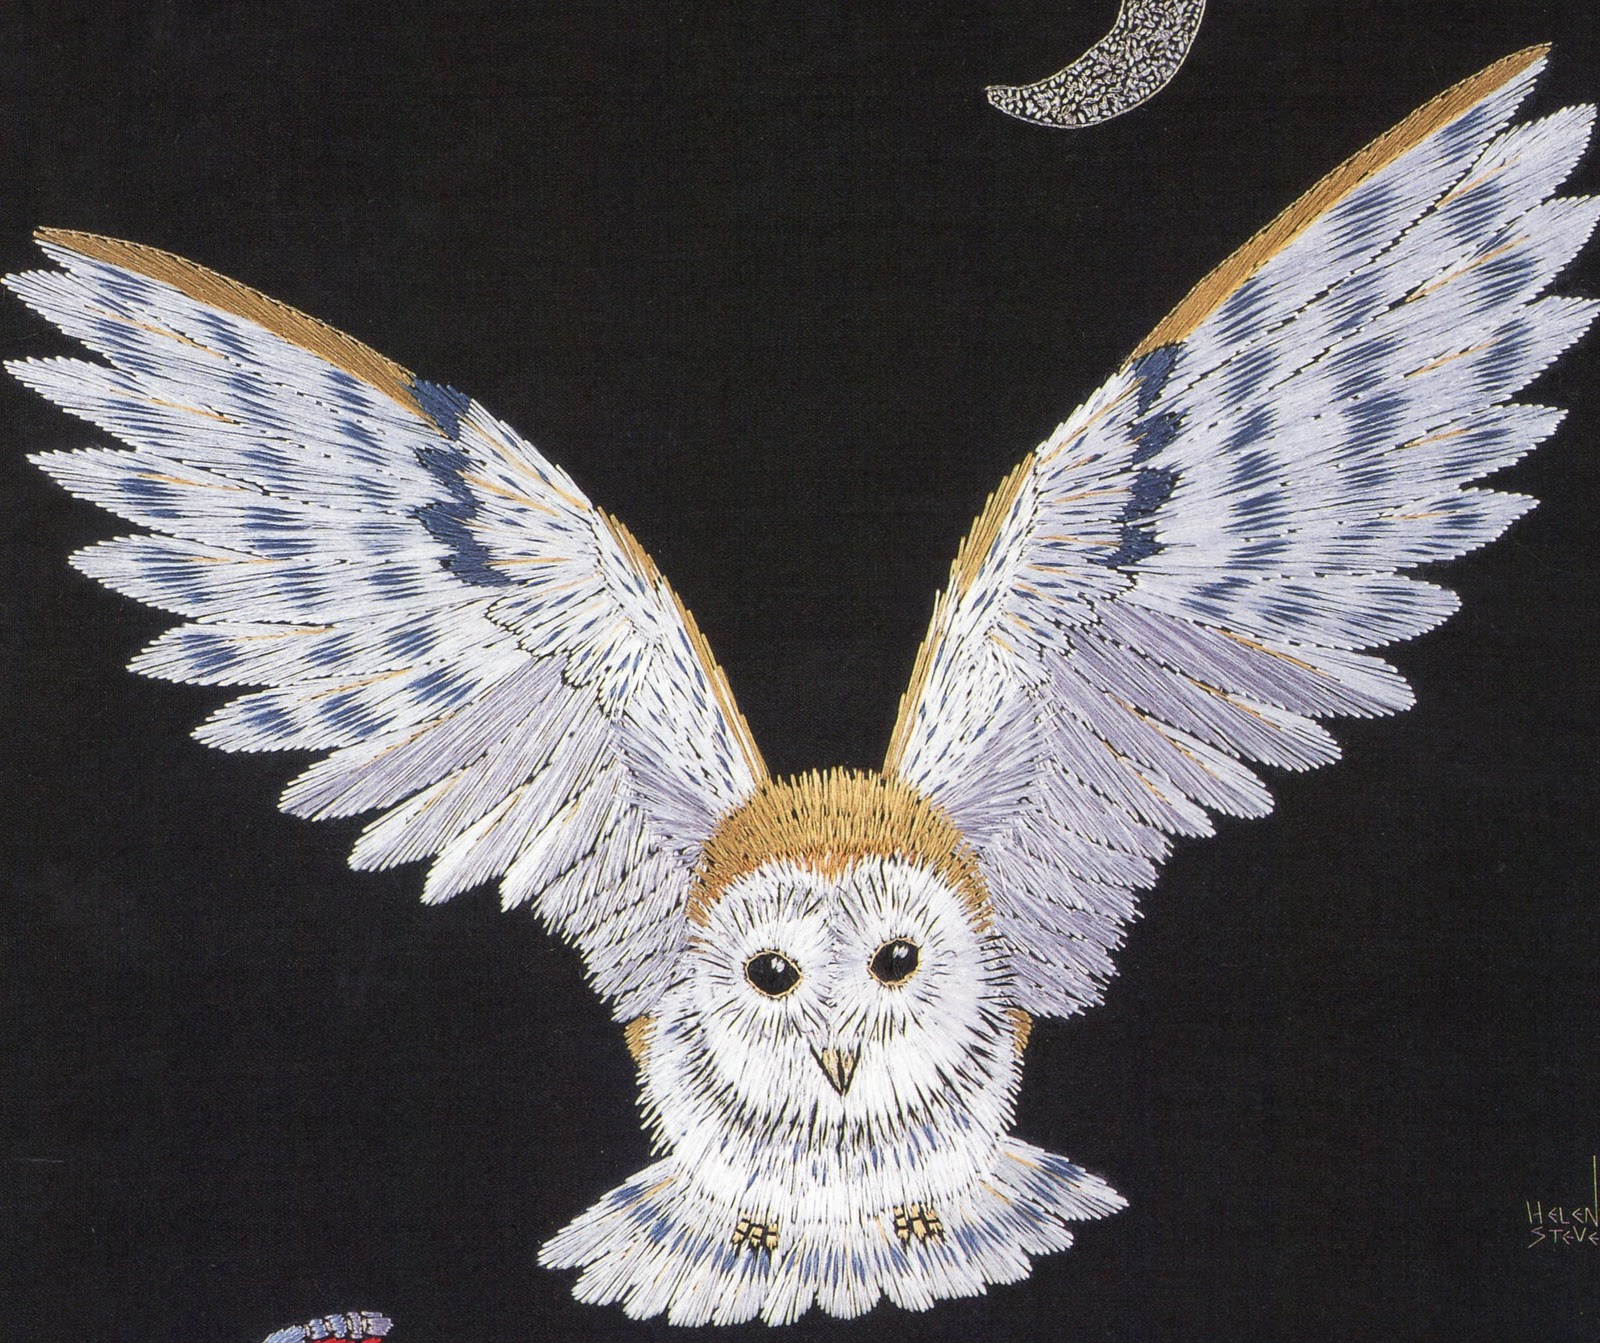 Barn Owl Diagram Overhead Crane Pendant Wiring Food Web Image Search Results Picture